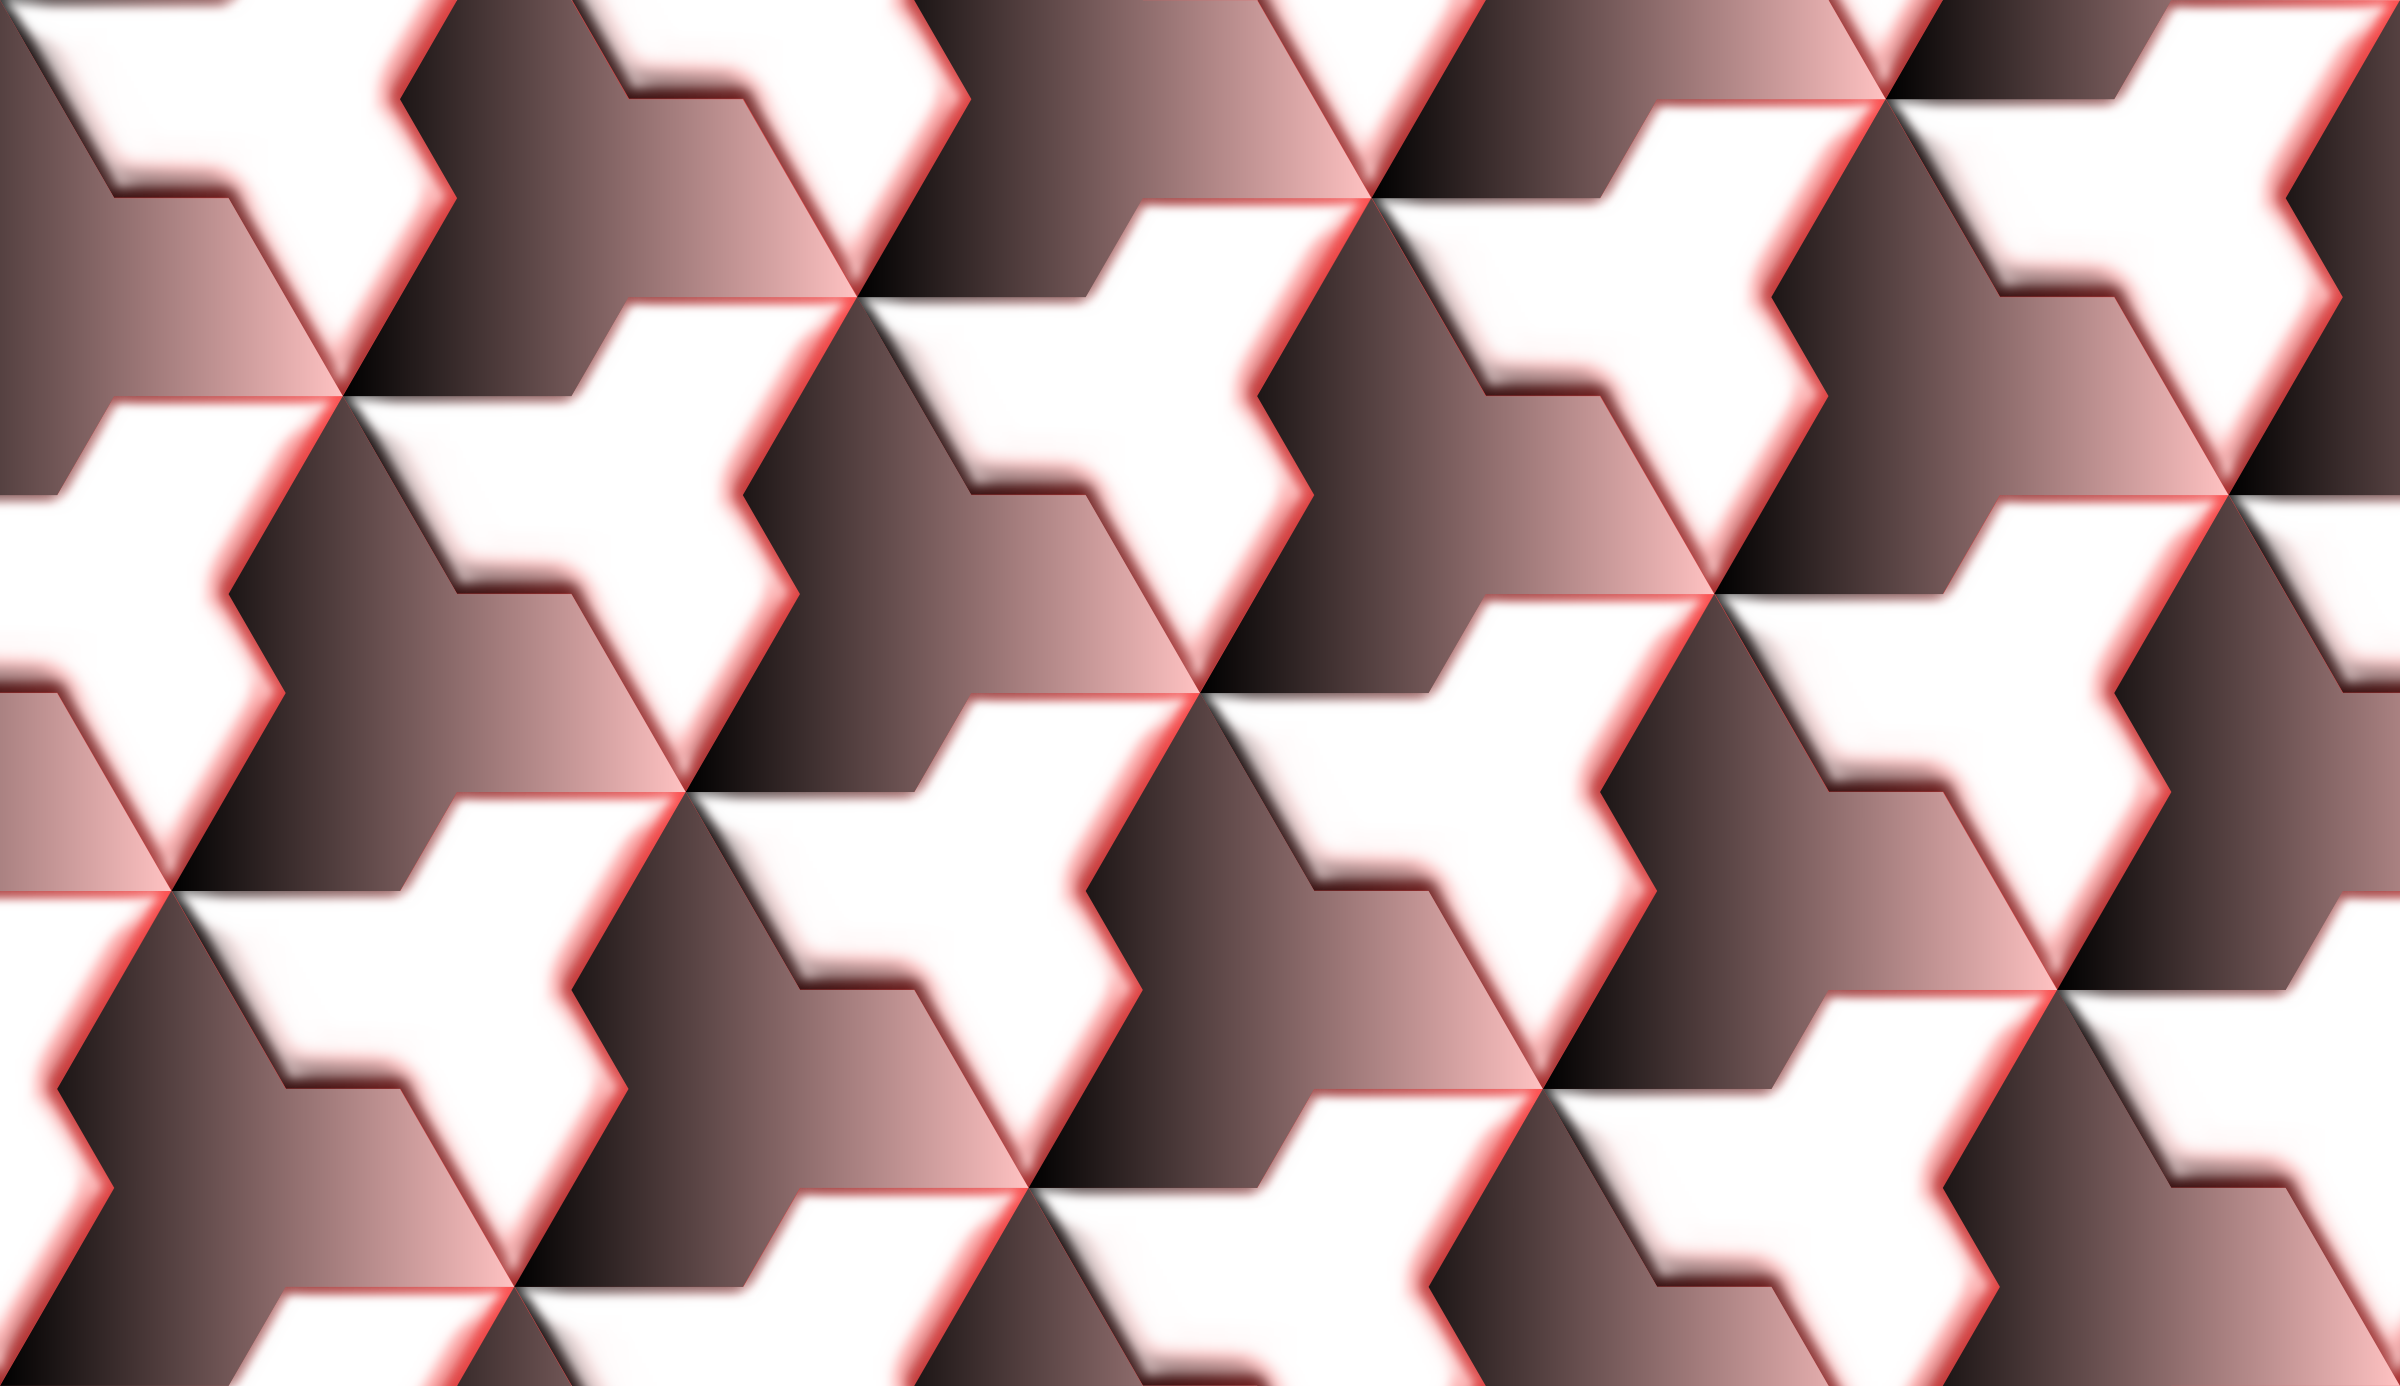 Tessellation 11 (variant 3) by Firkin